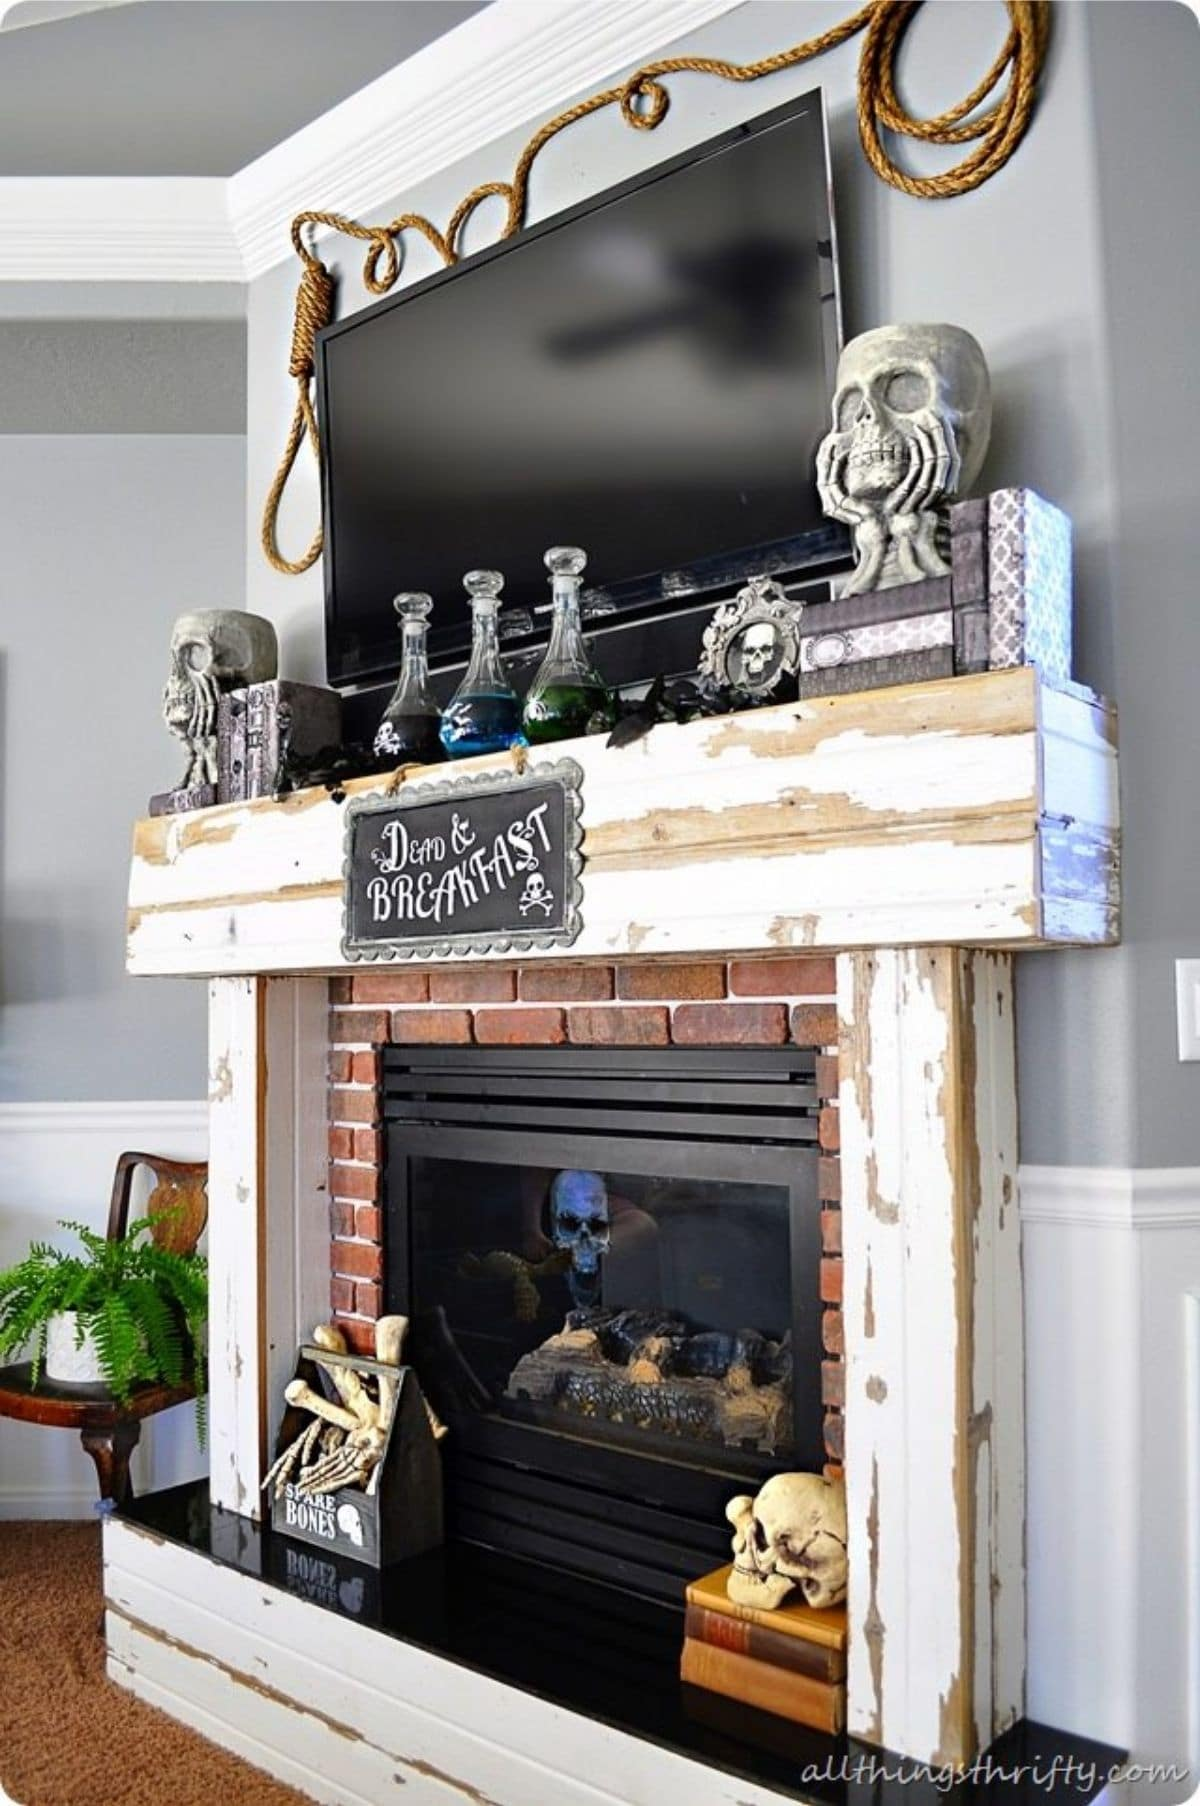 halloween mantel decorated with skulls, potions, and picture that says Dead & Breakfast